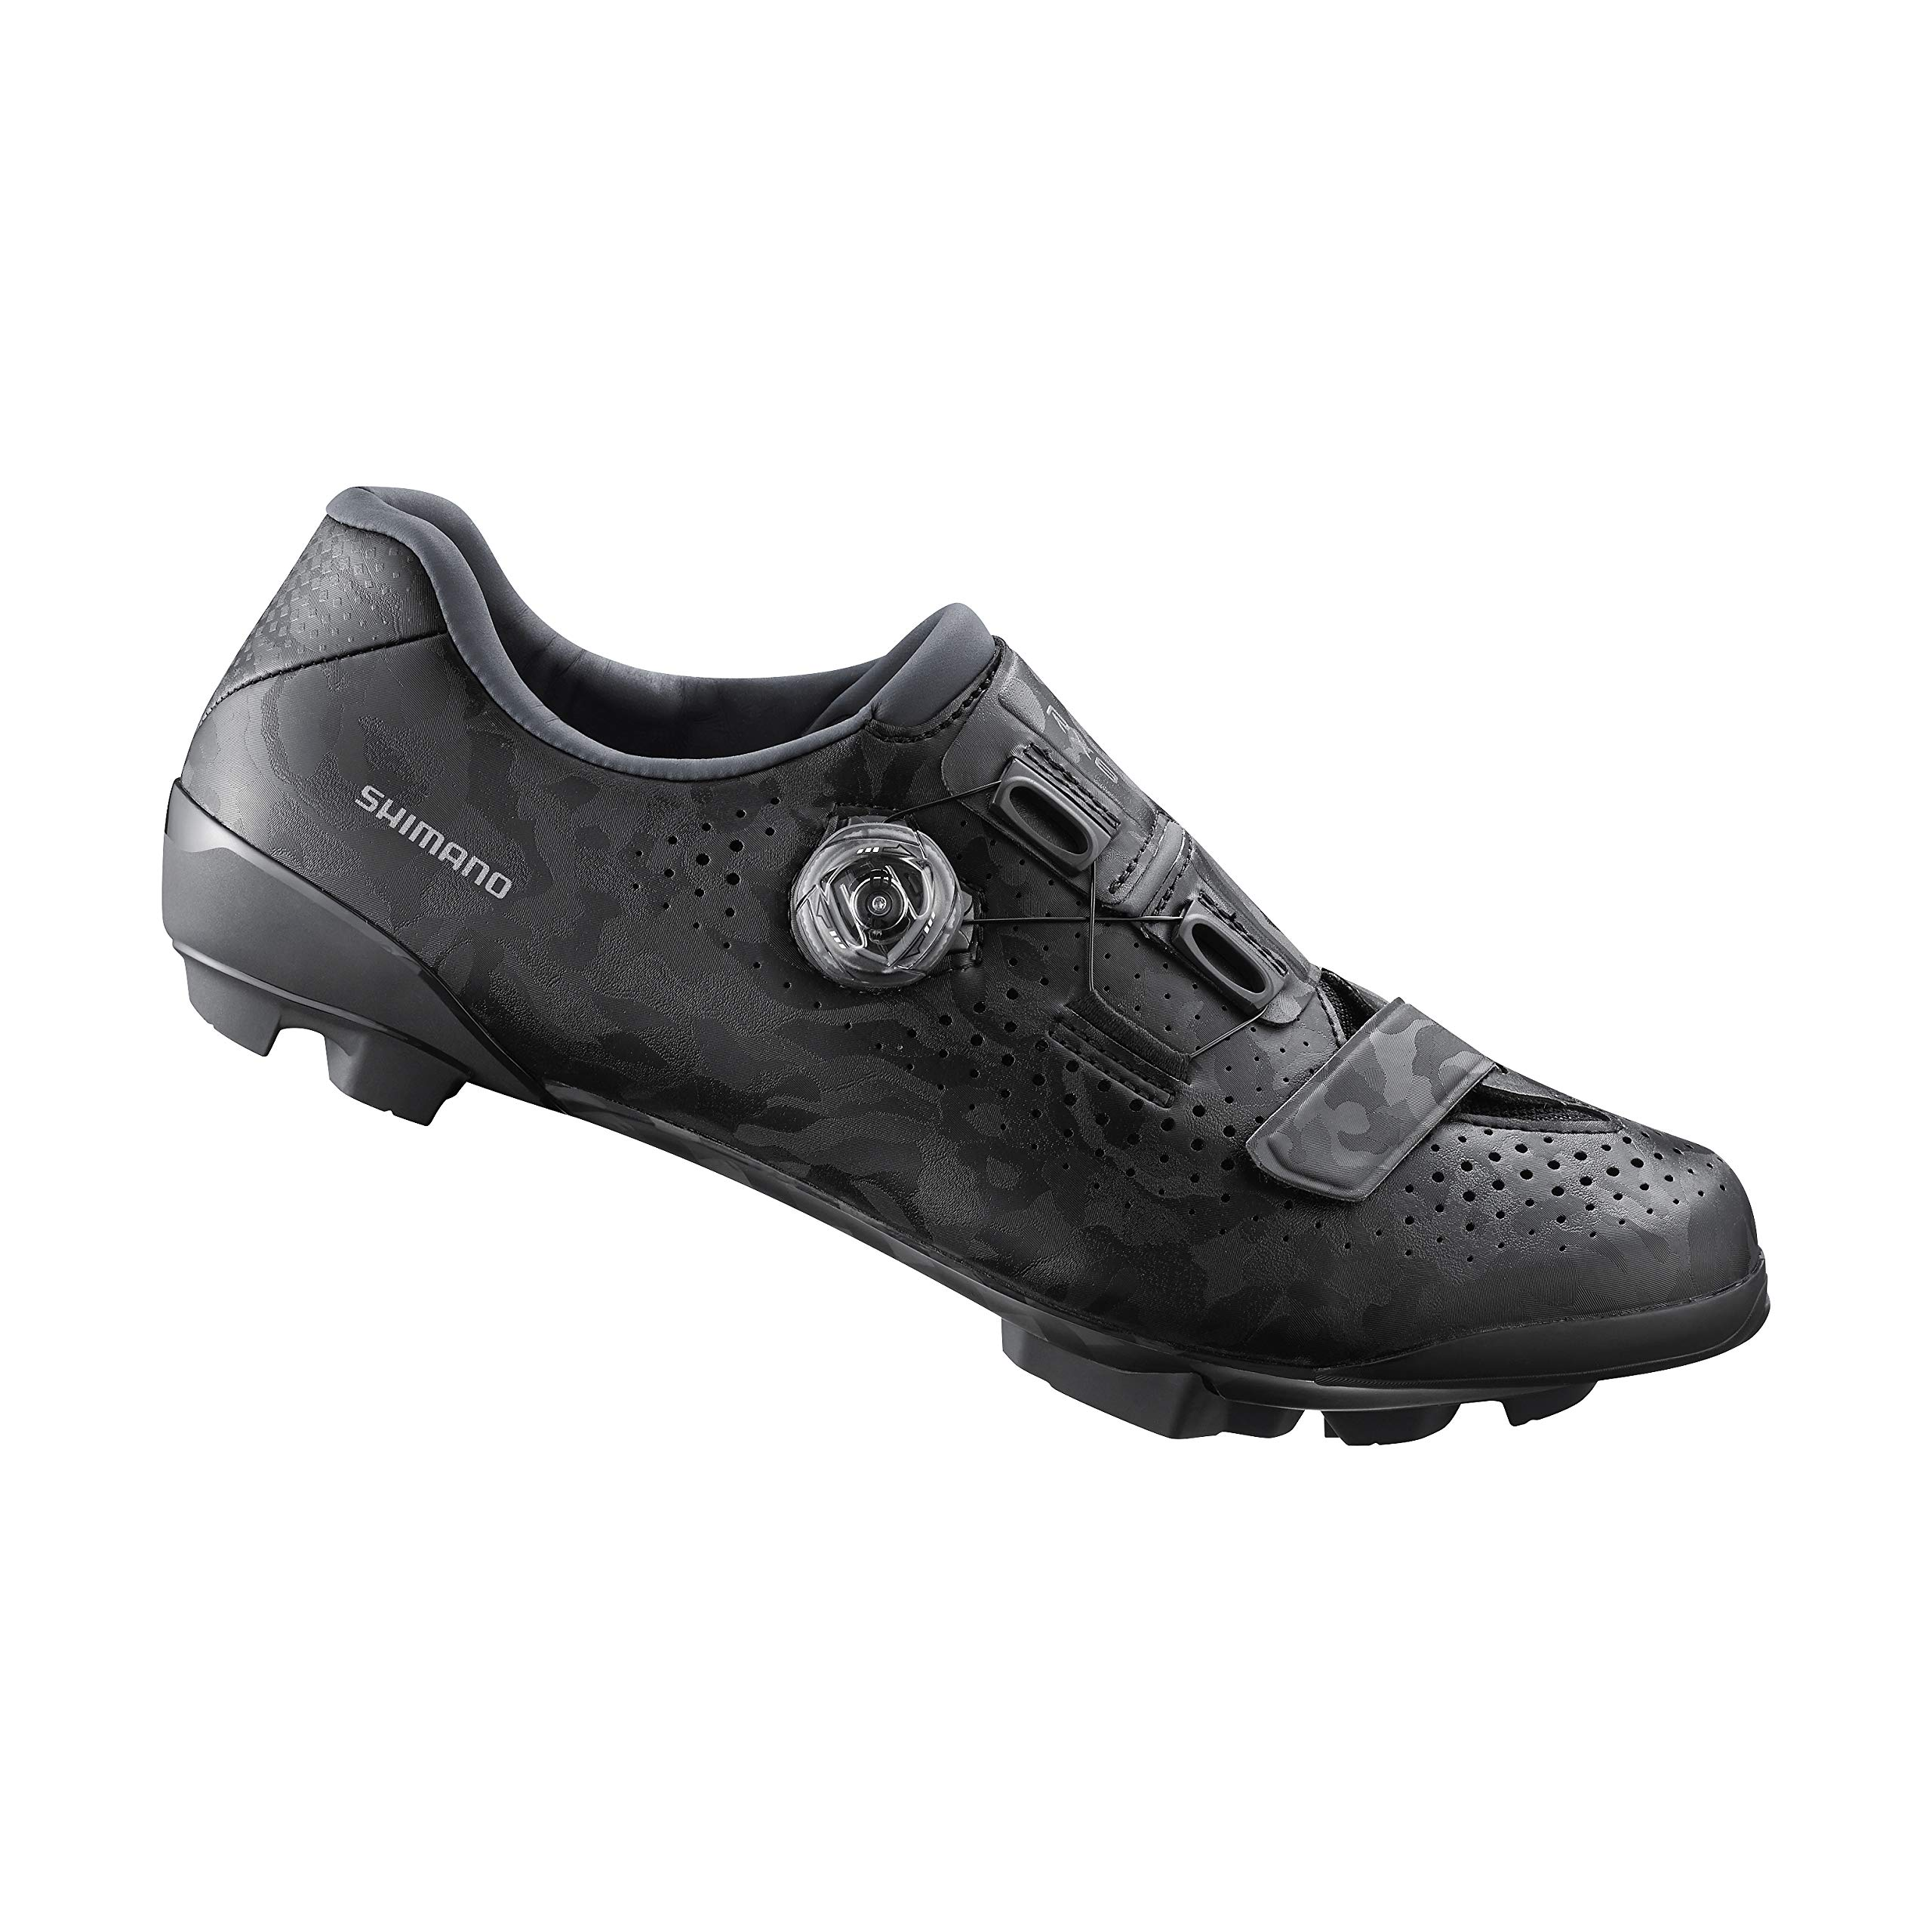 SHIMANO SH-RX800 Bicycles Shoes, Black, 47.0 by SHIMANO